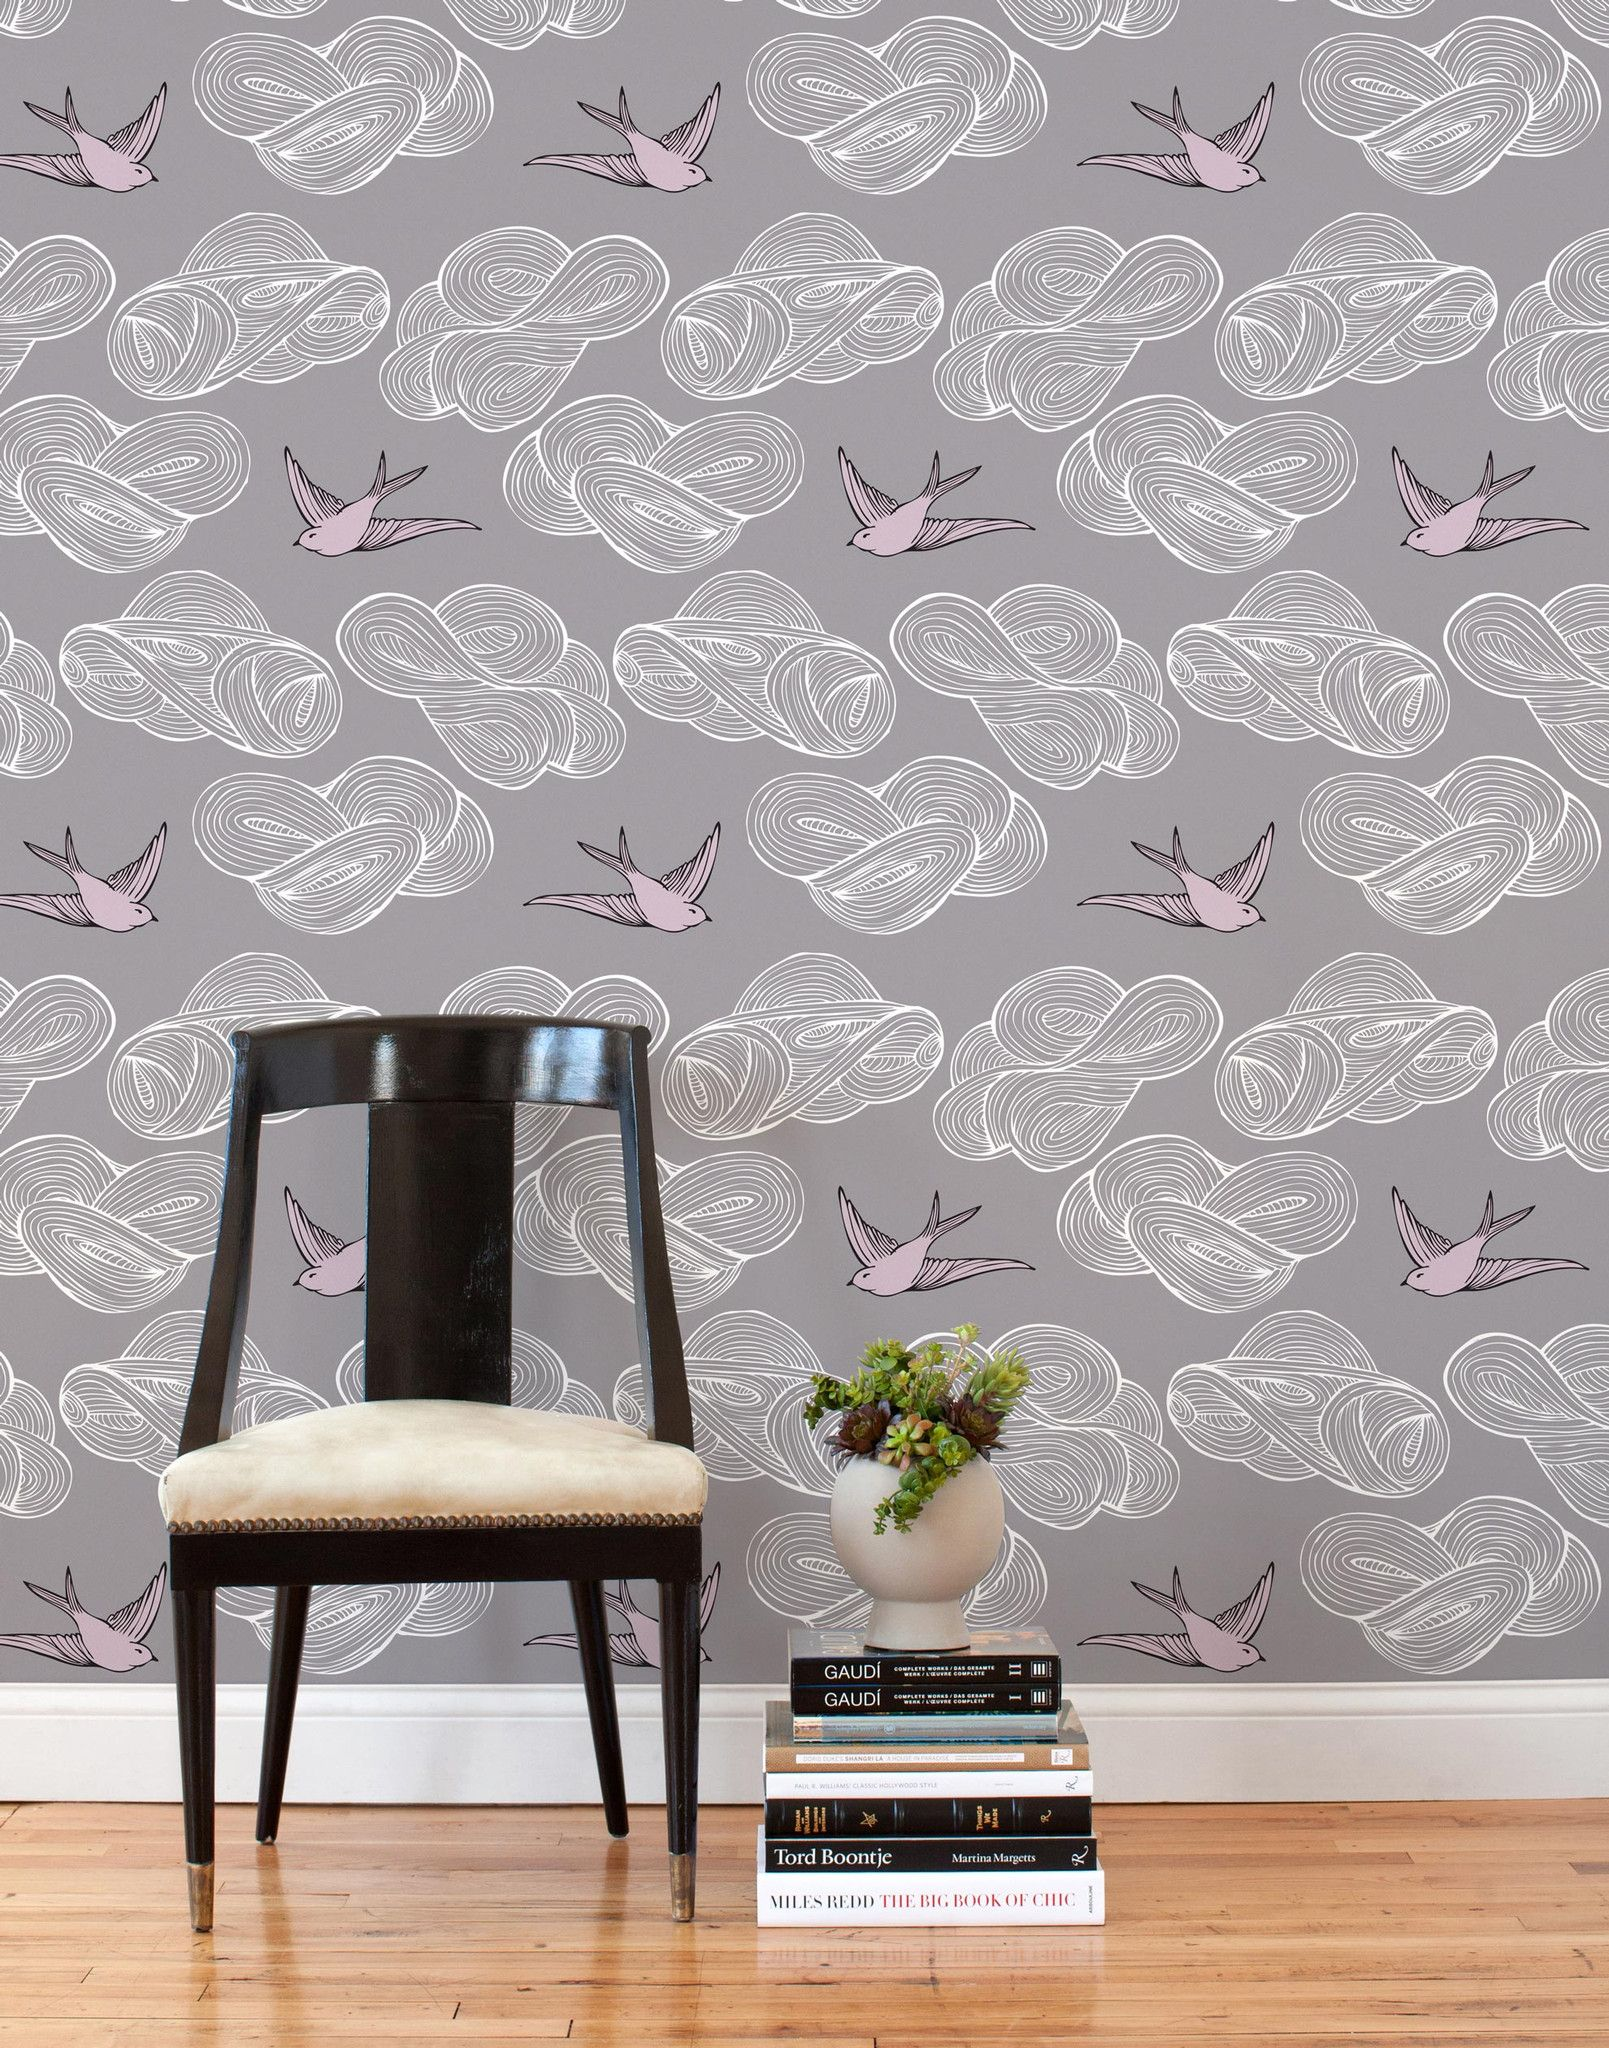 Daydream (Lavender) Tiles Tile Wallpapertemporary